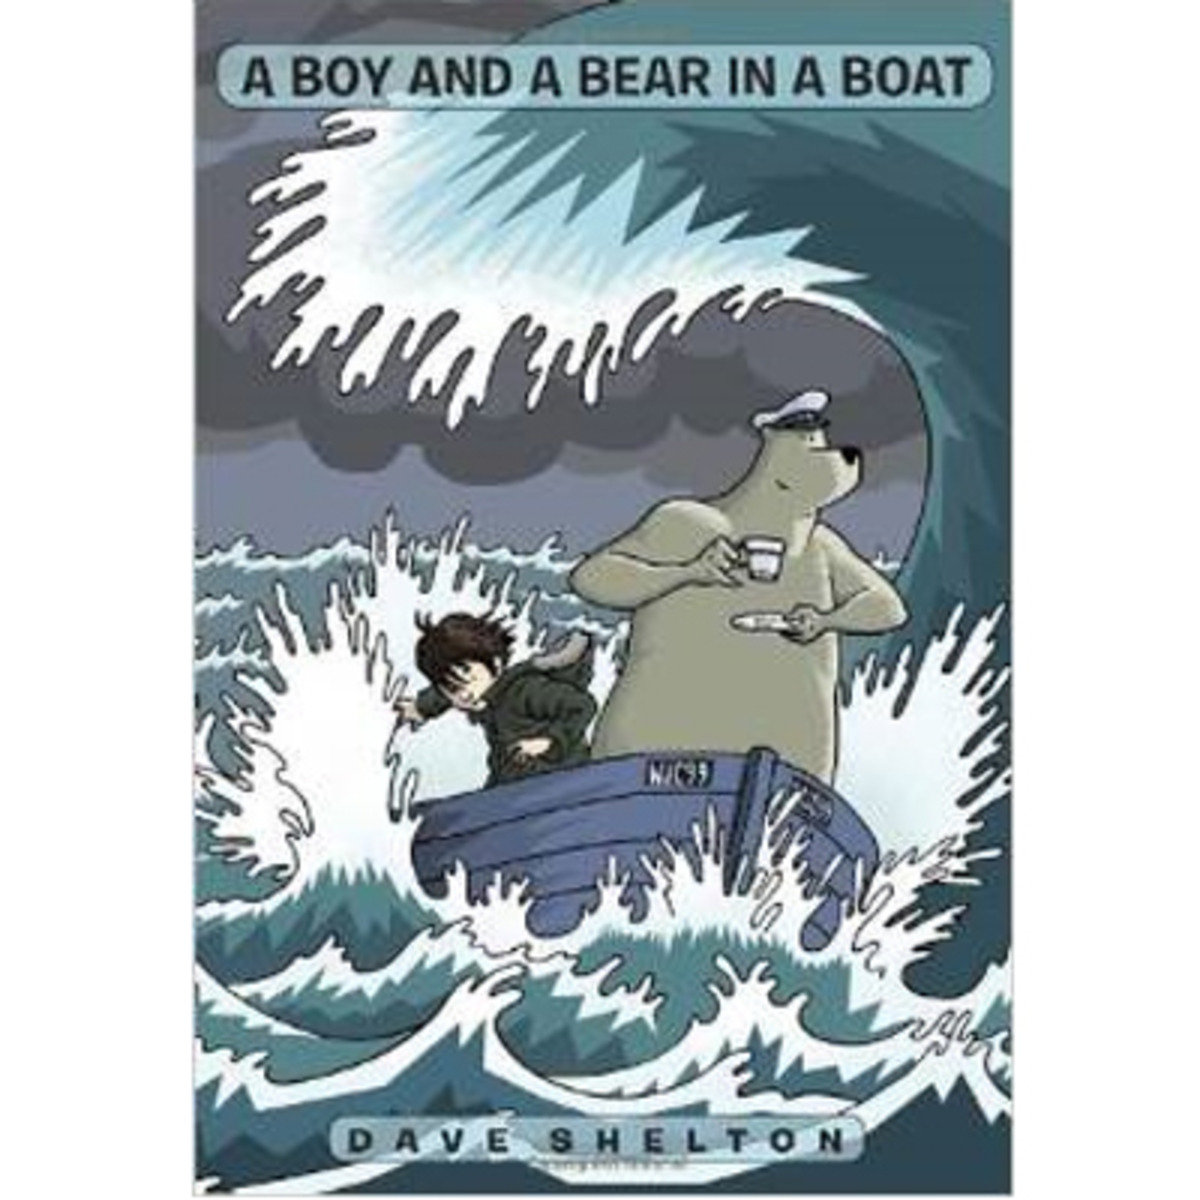 A BOY AND A BEAR IN A BOAT 9780449810606